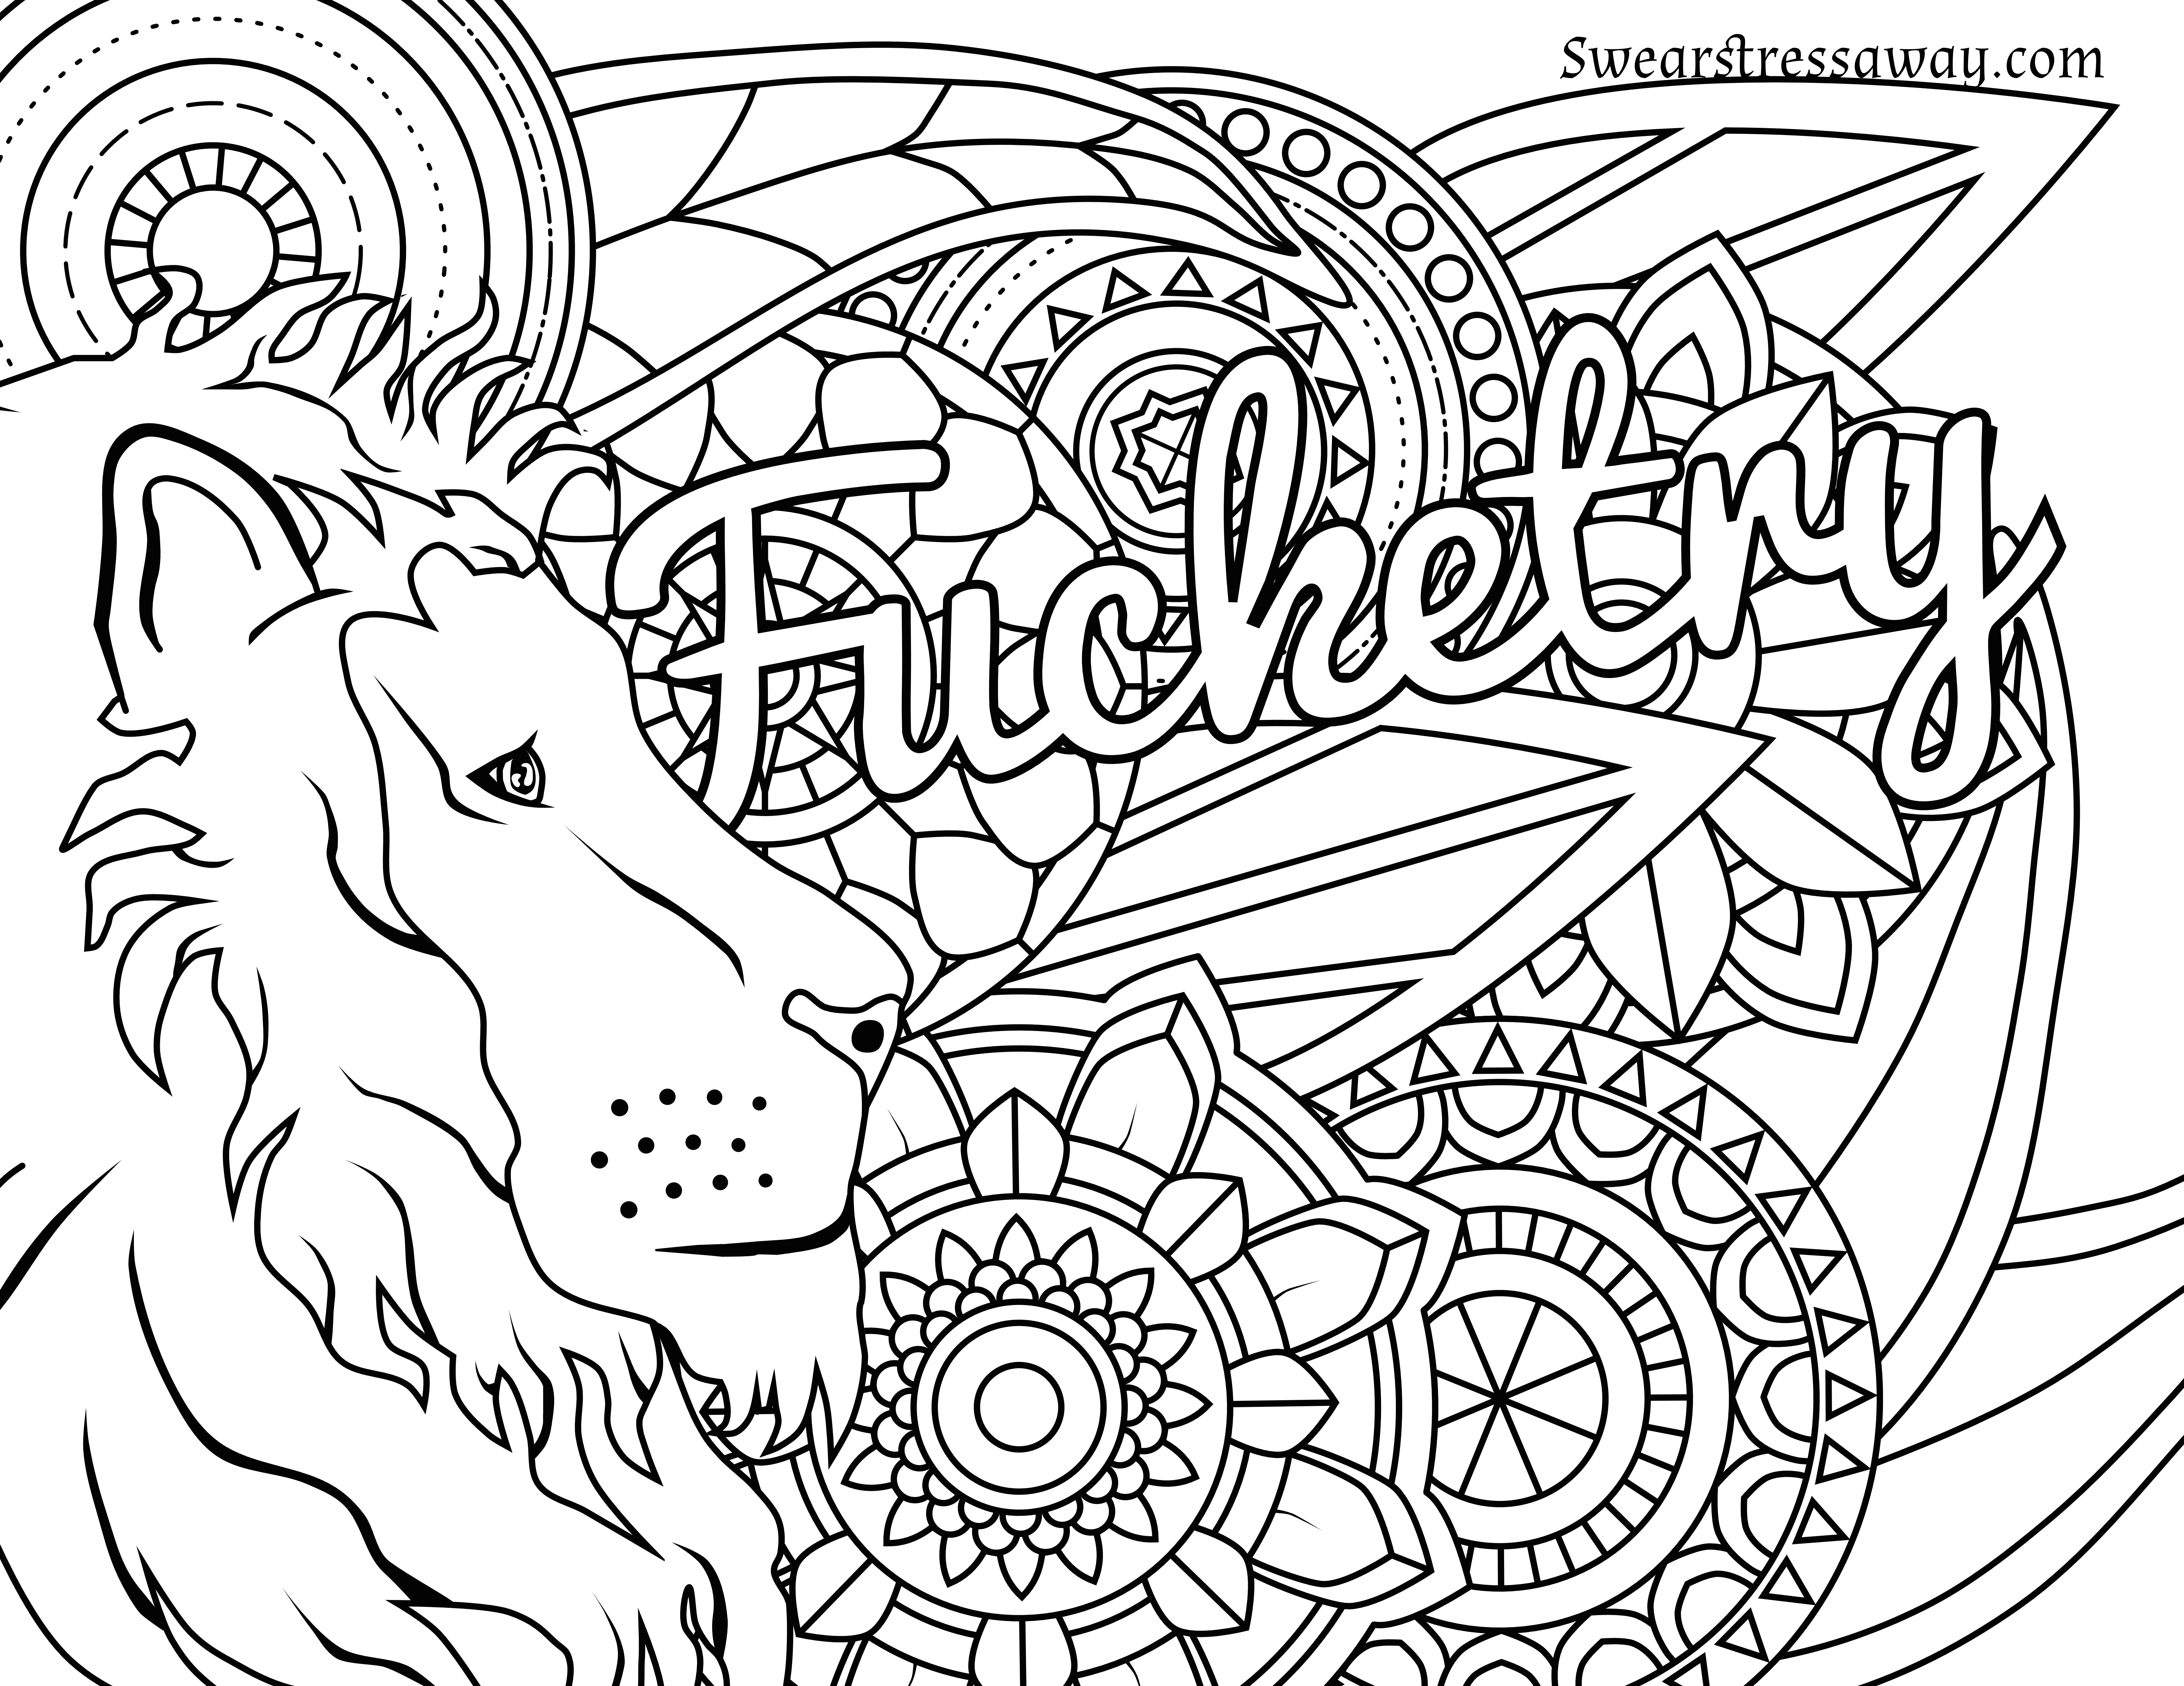 Fucketry - Swear Word Coloring Page - Adult Coloring Page ...